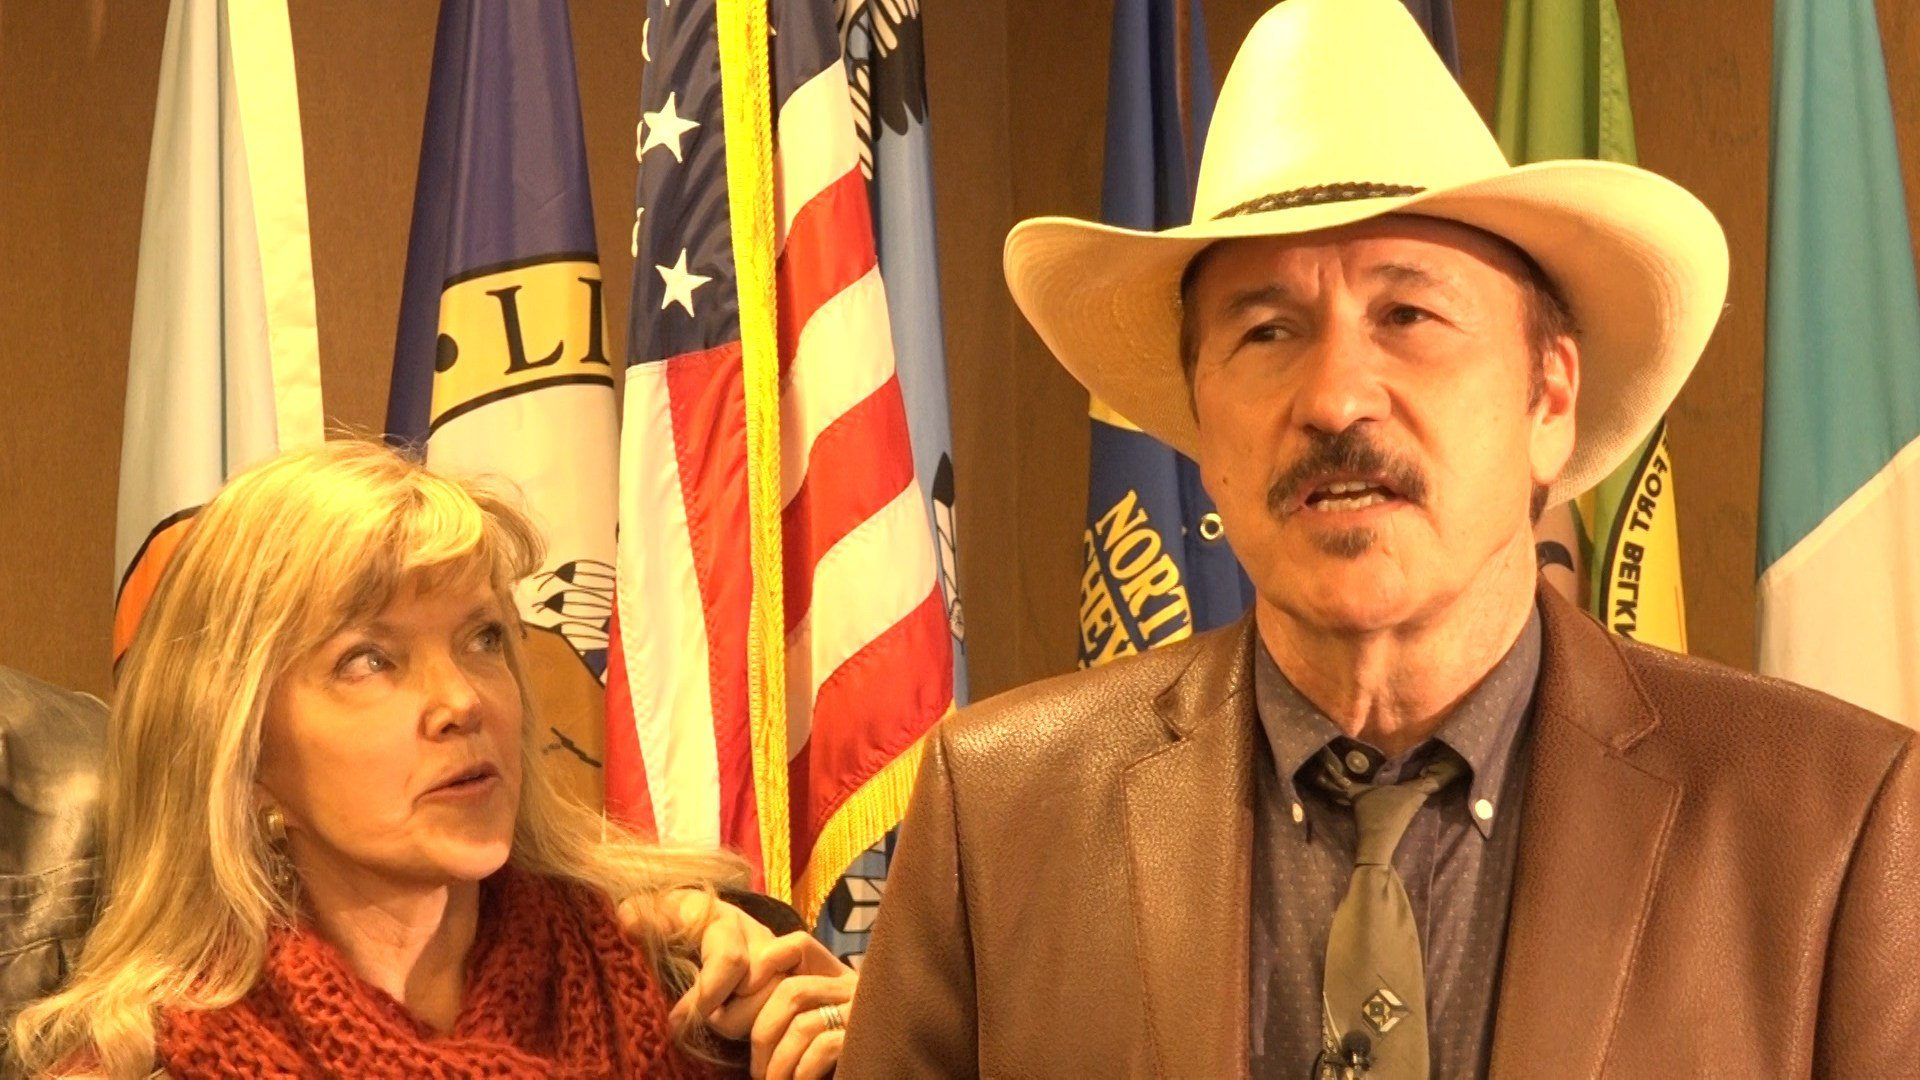 Democratic U.S. House candidate Rob Quist and his wife, Bonni